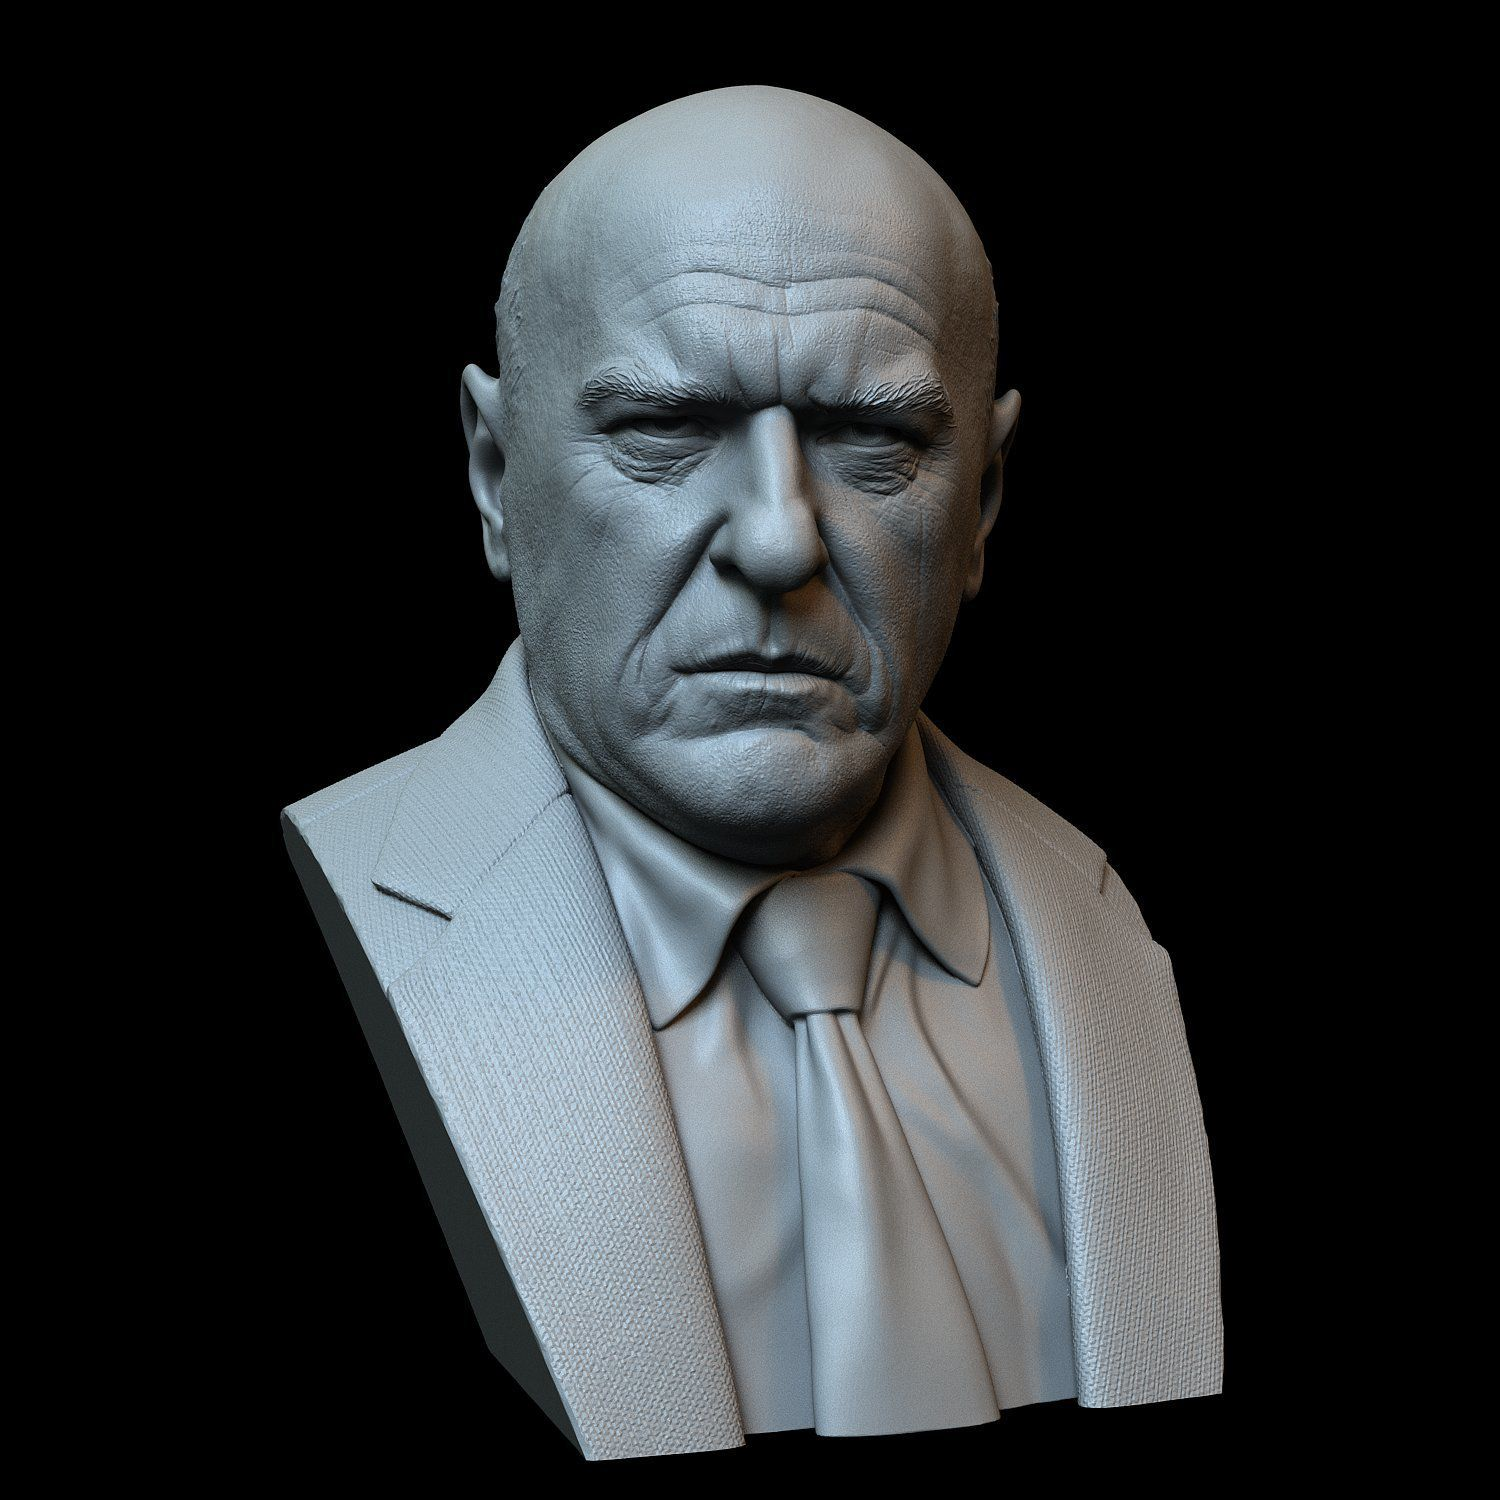 Hank01.RGB_color.jpg Download STL file Hank Schrader (Dean Norris) from Breaking Bad • Template to 3D print, sidnaique